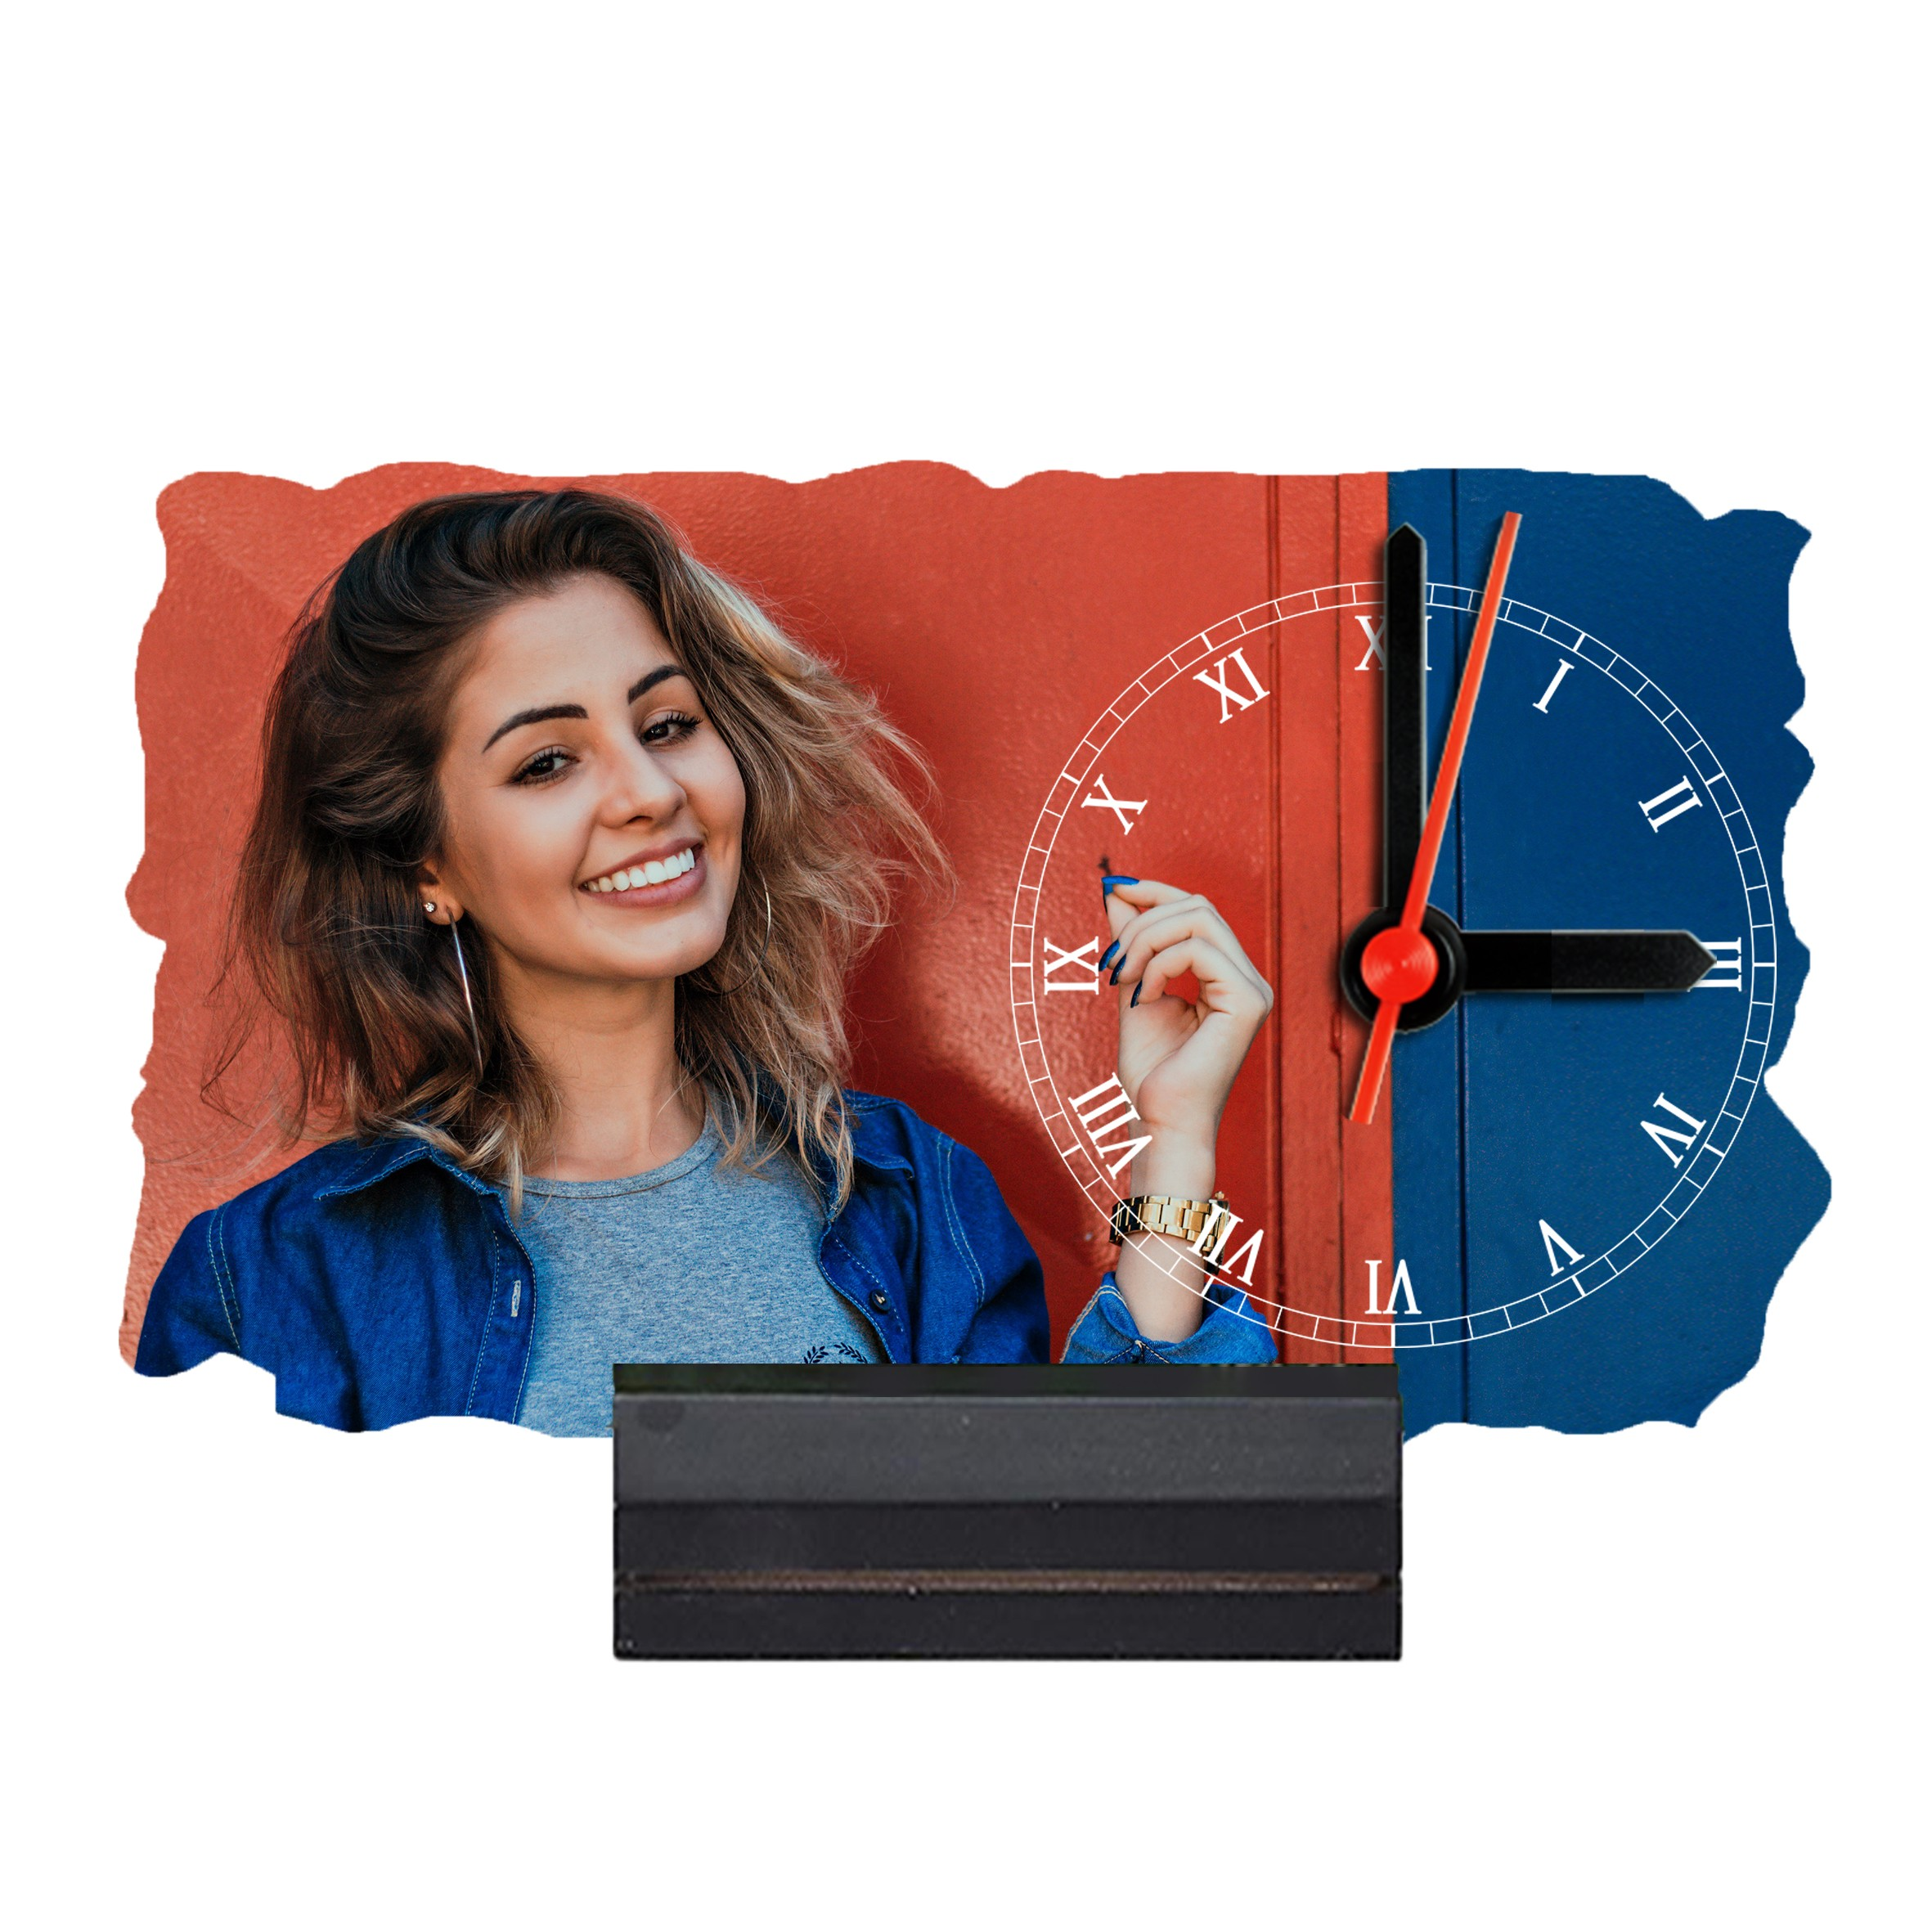 7'' x 4'' Rectangular Shape Personalized Photo Printed Wooden Table Clock (with Wooden Base)